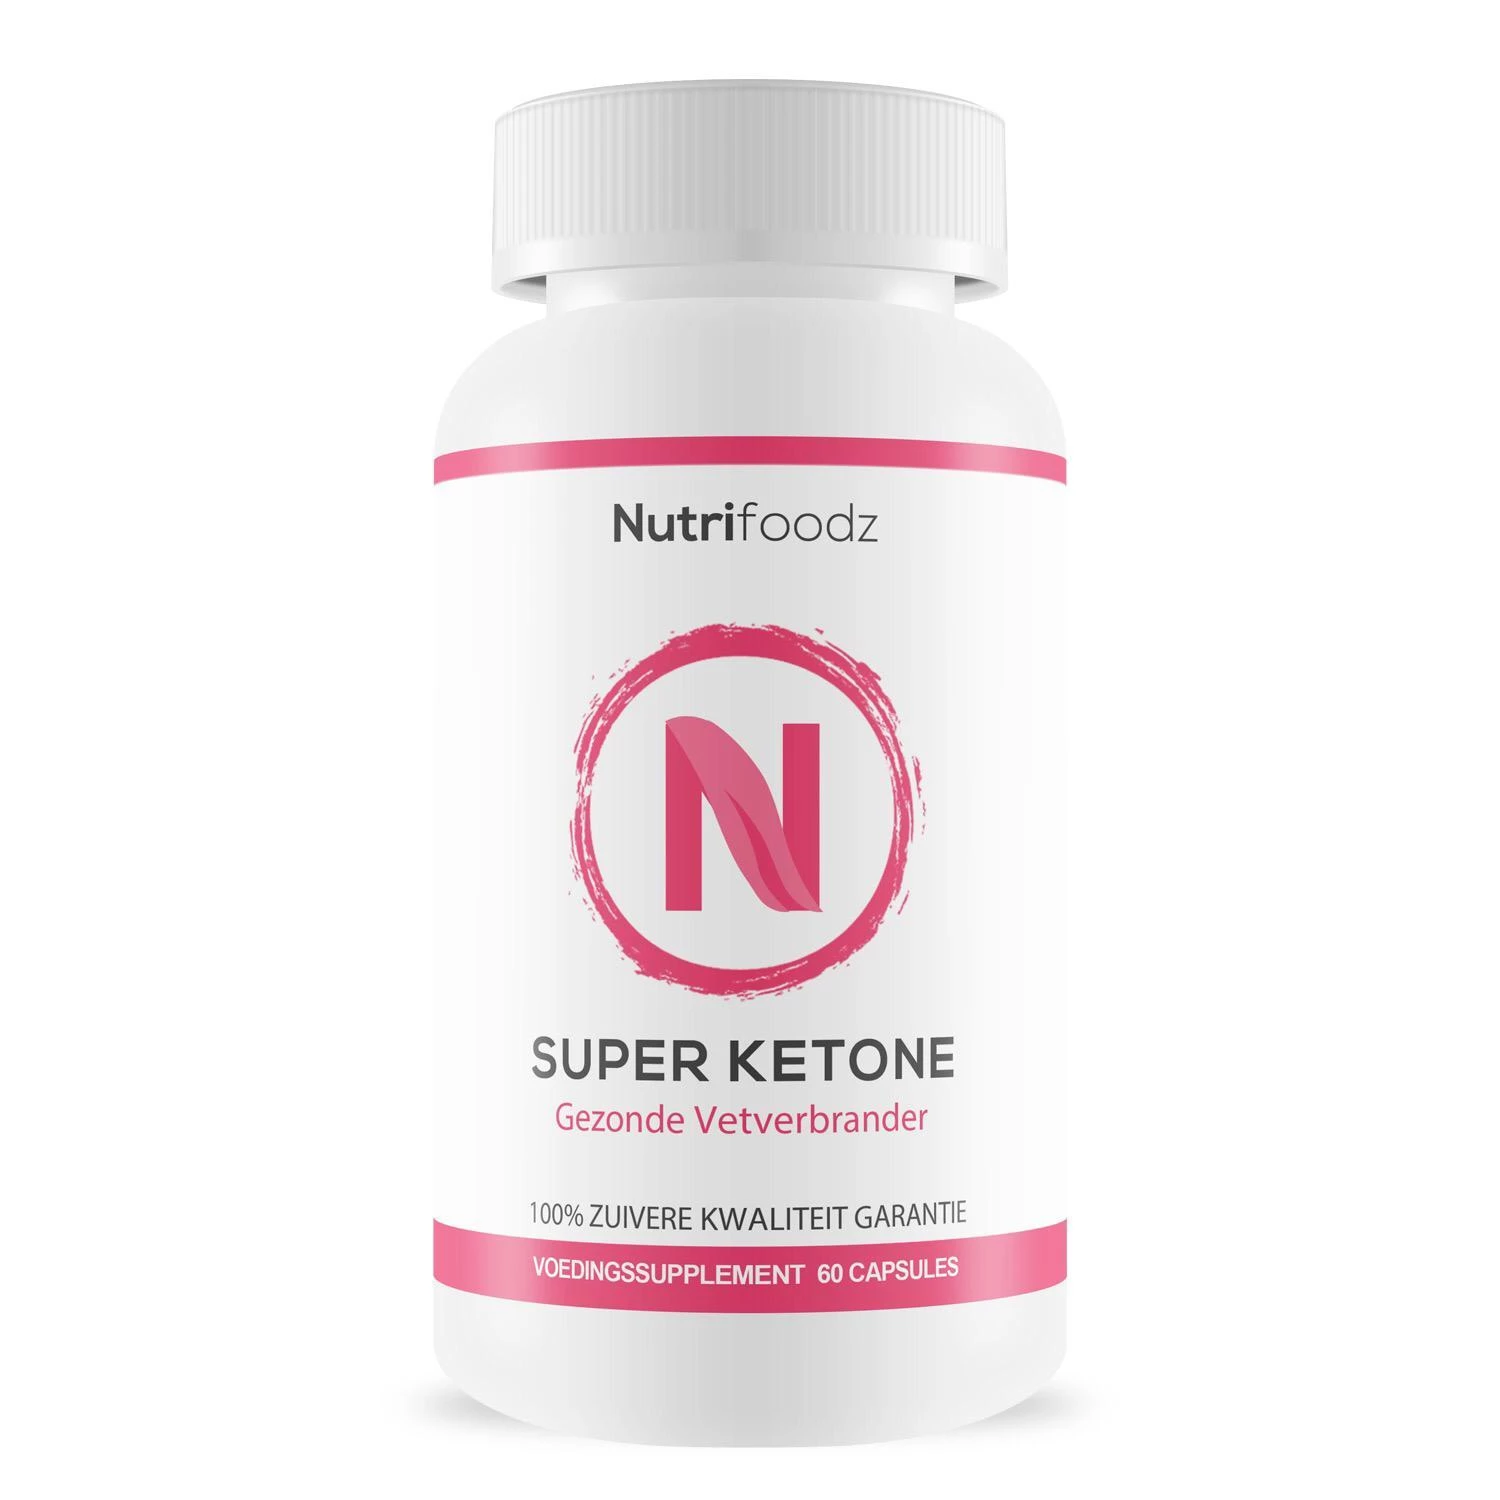 SUPER KETONE 12 pack (6+6 GRATIS) nutrition